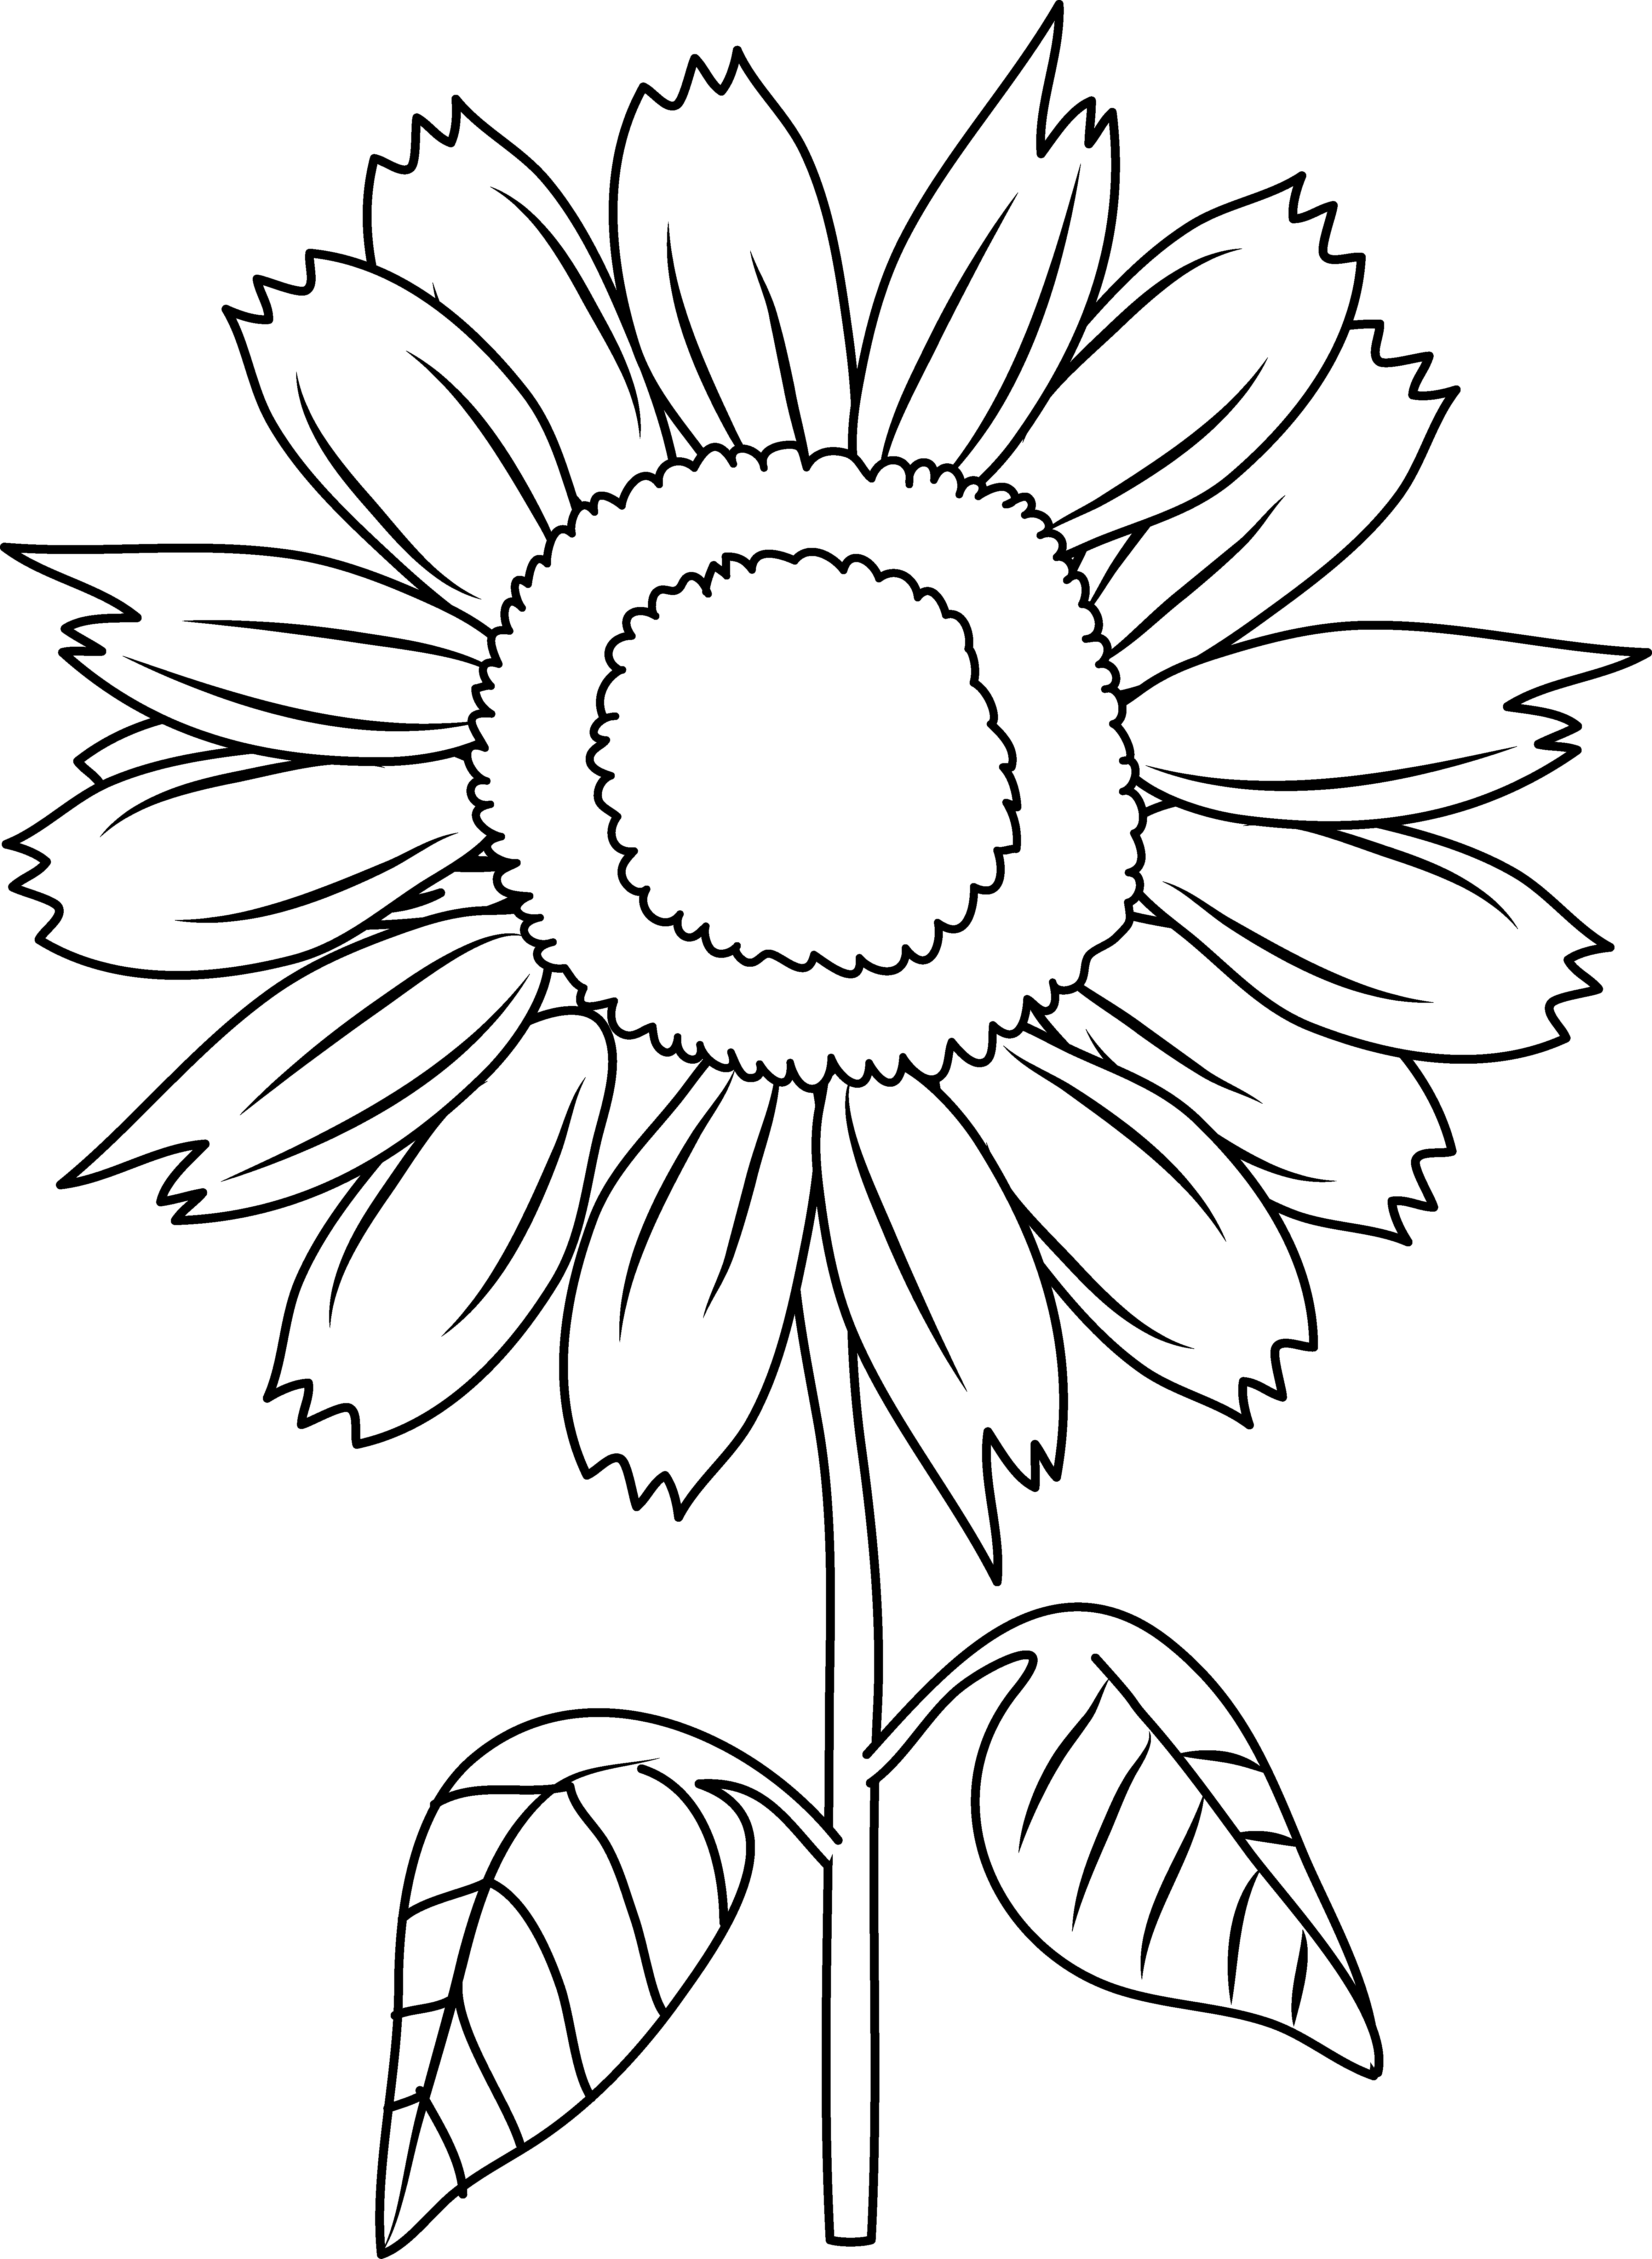 sunflowers clipart to color - Clipground